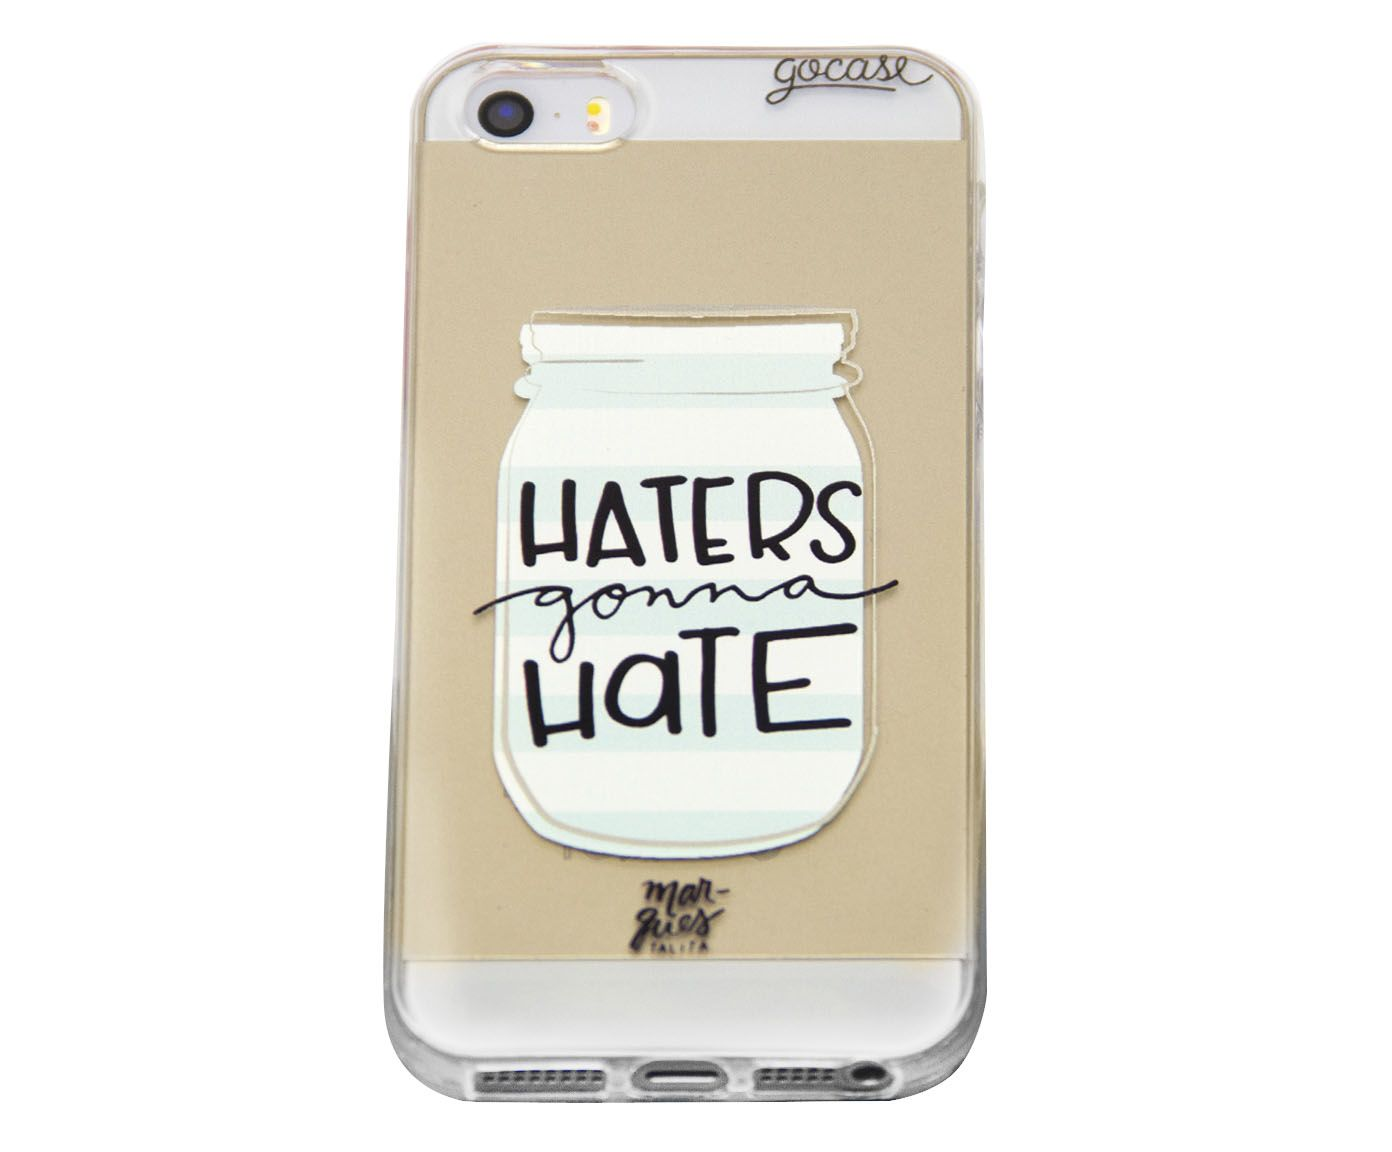 Case Haters Gonna Hate - Para iPhone 4/4S | Westwing.com.br